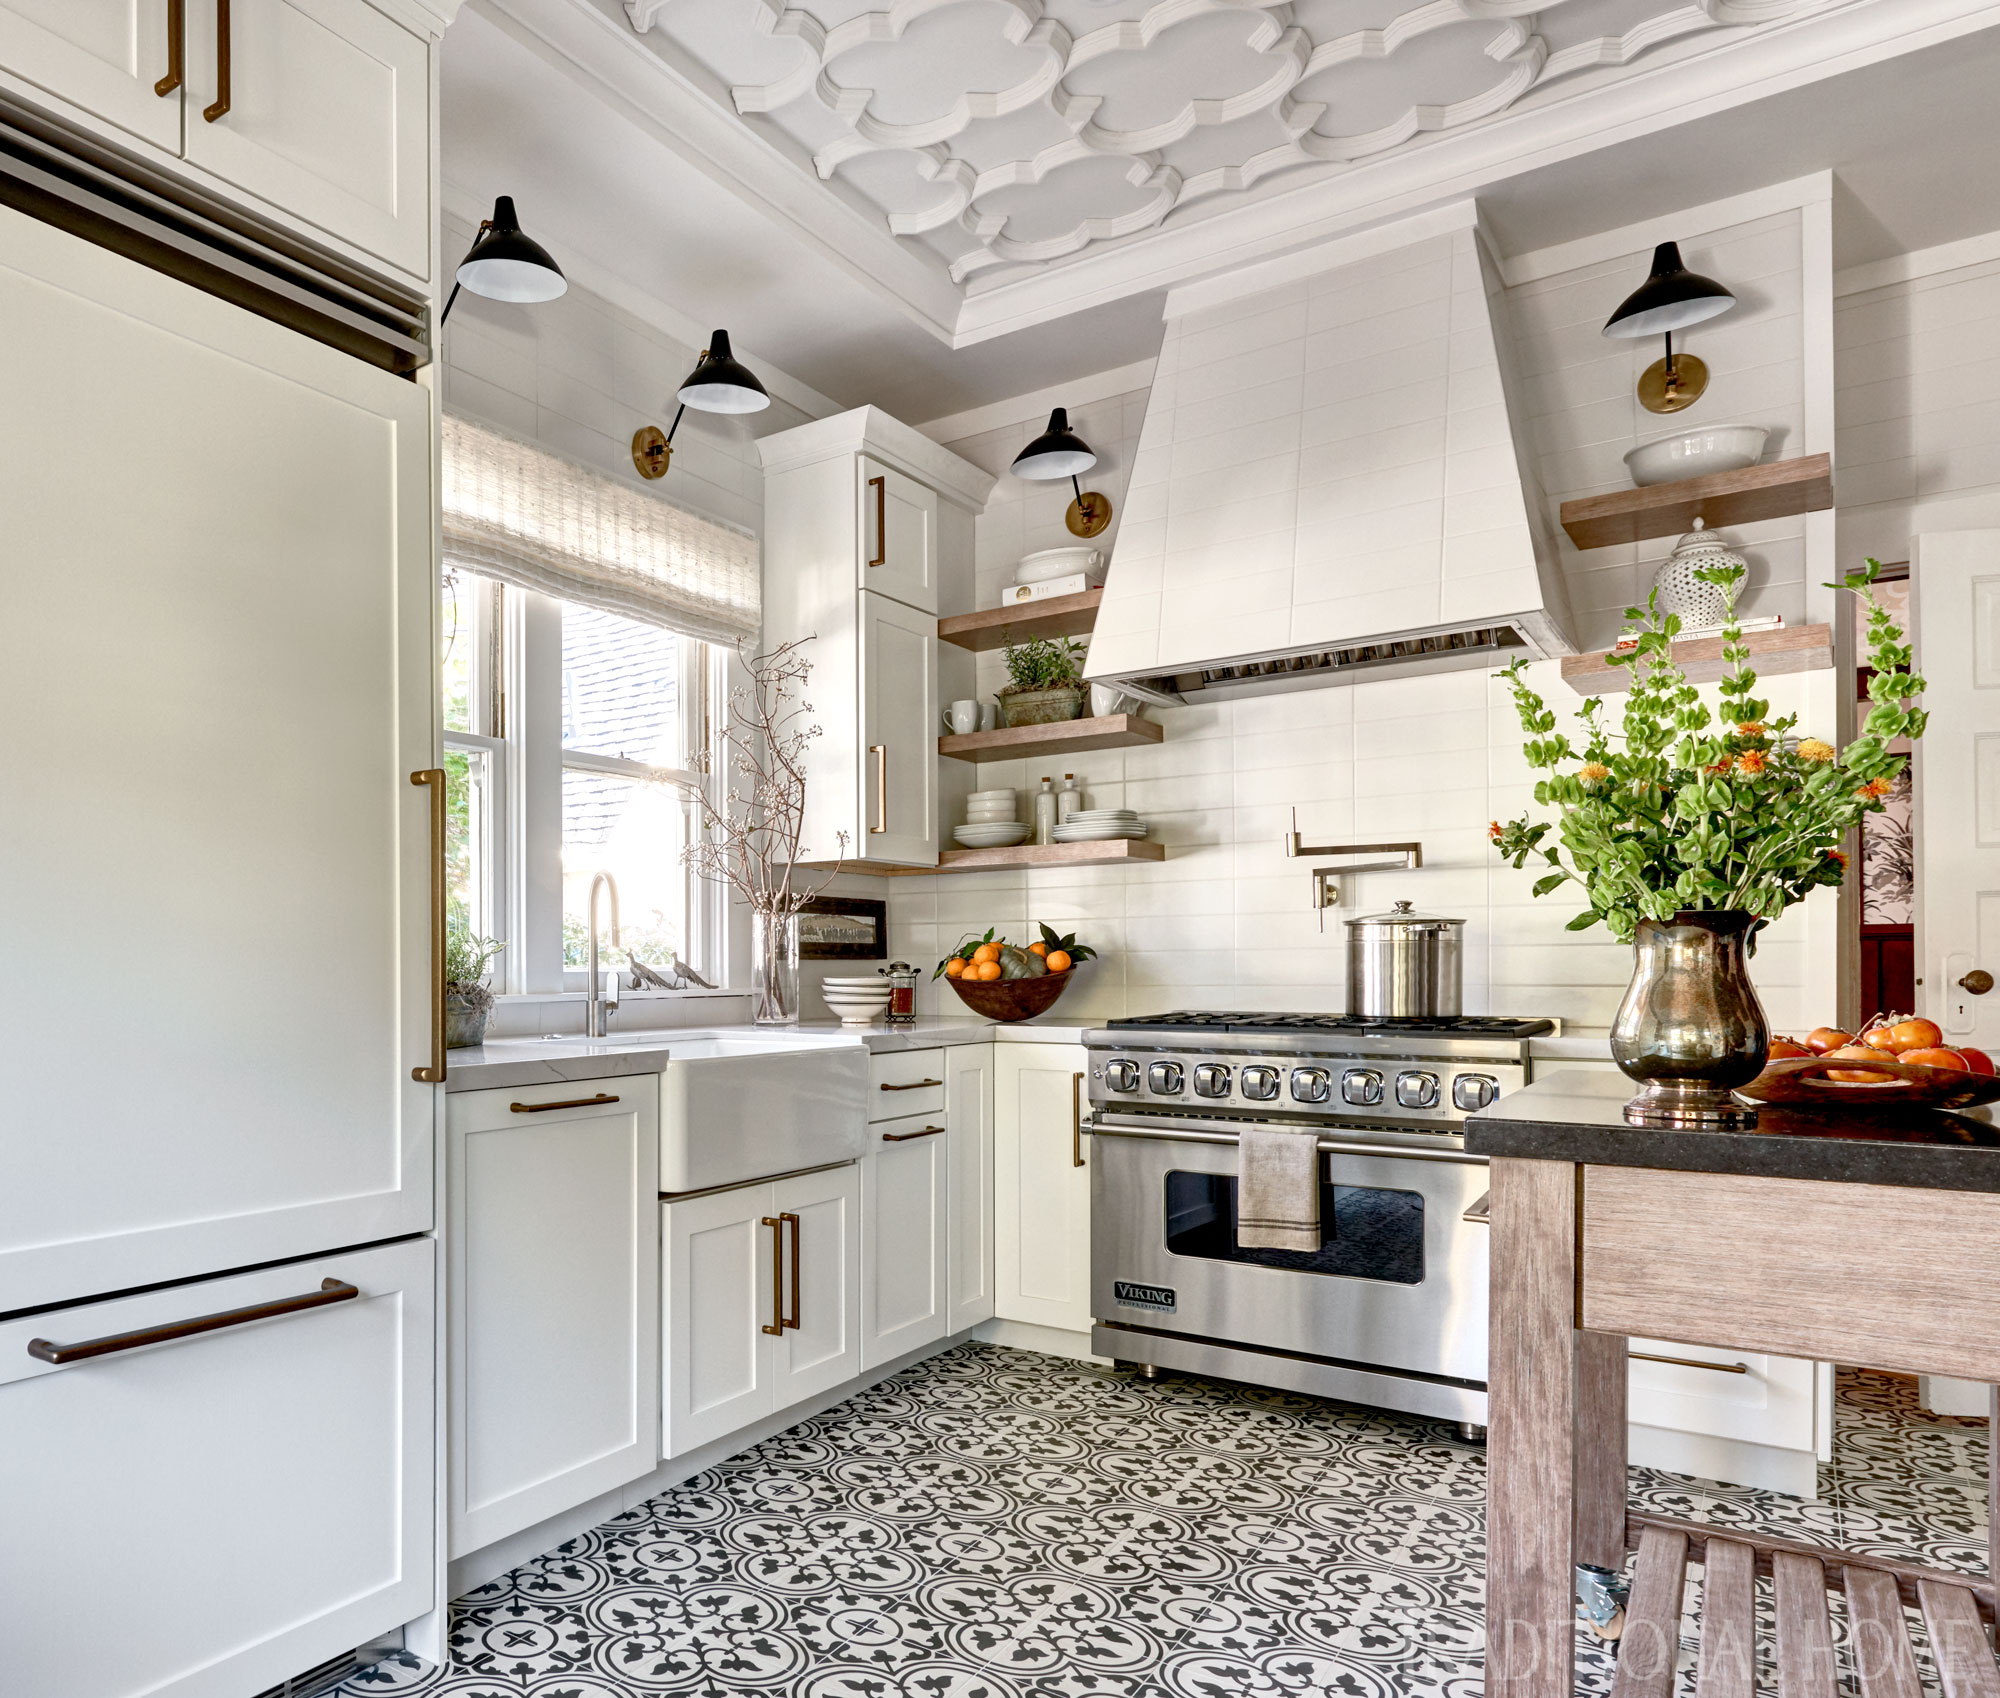 Home Design Ideas For 2019: Get The Look: Farmhouse Style